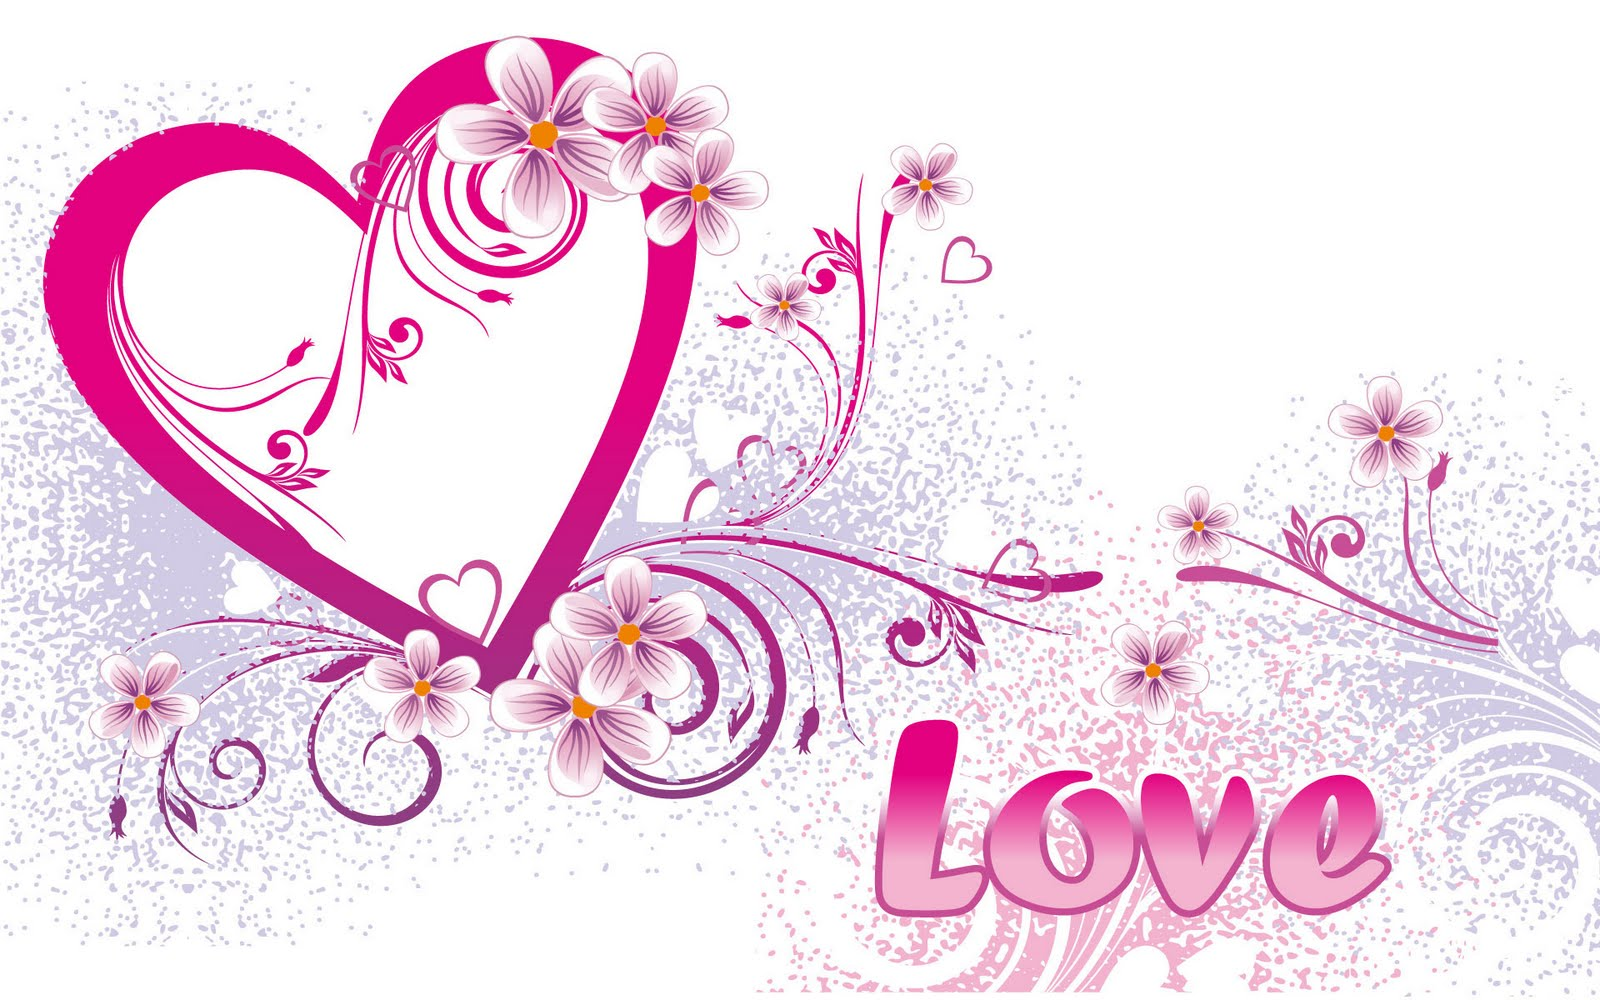 hd love wallpapers|heart wallpapers for lovers | health and beautiful